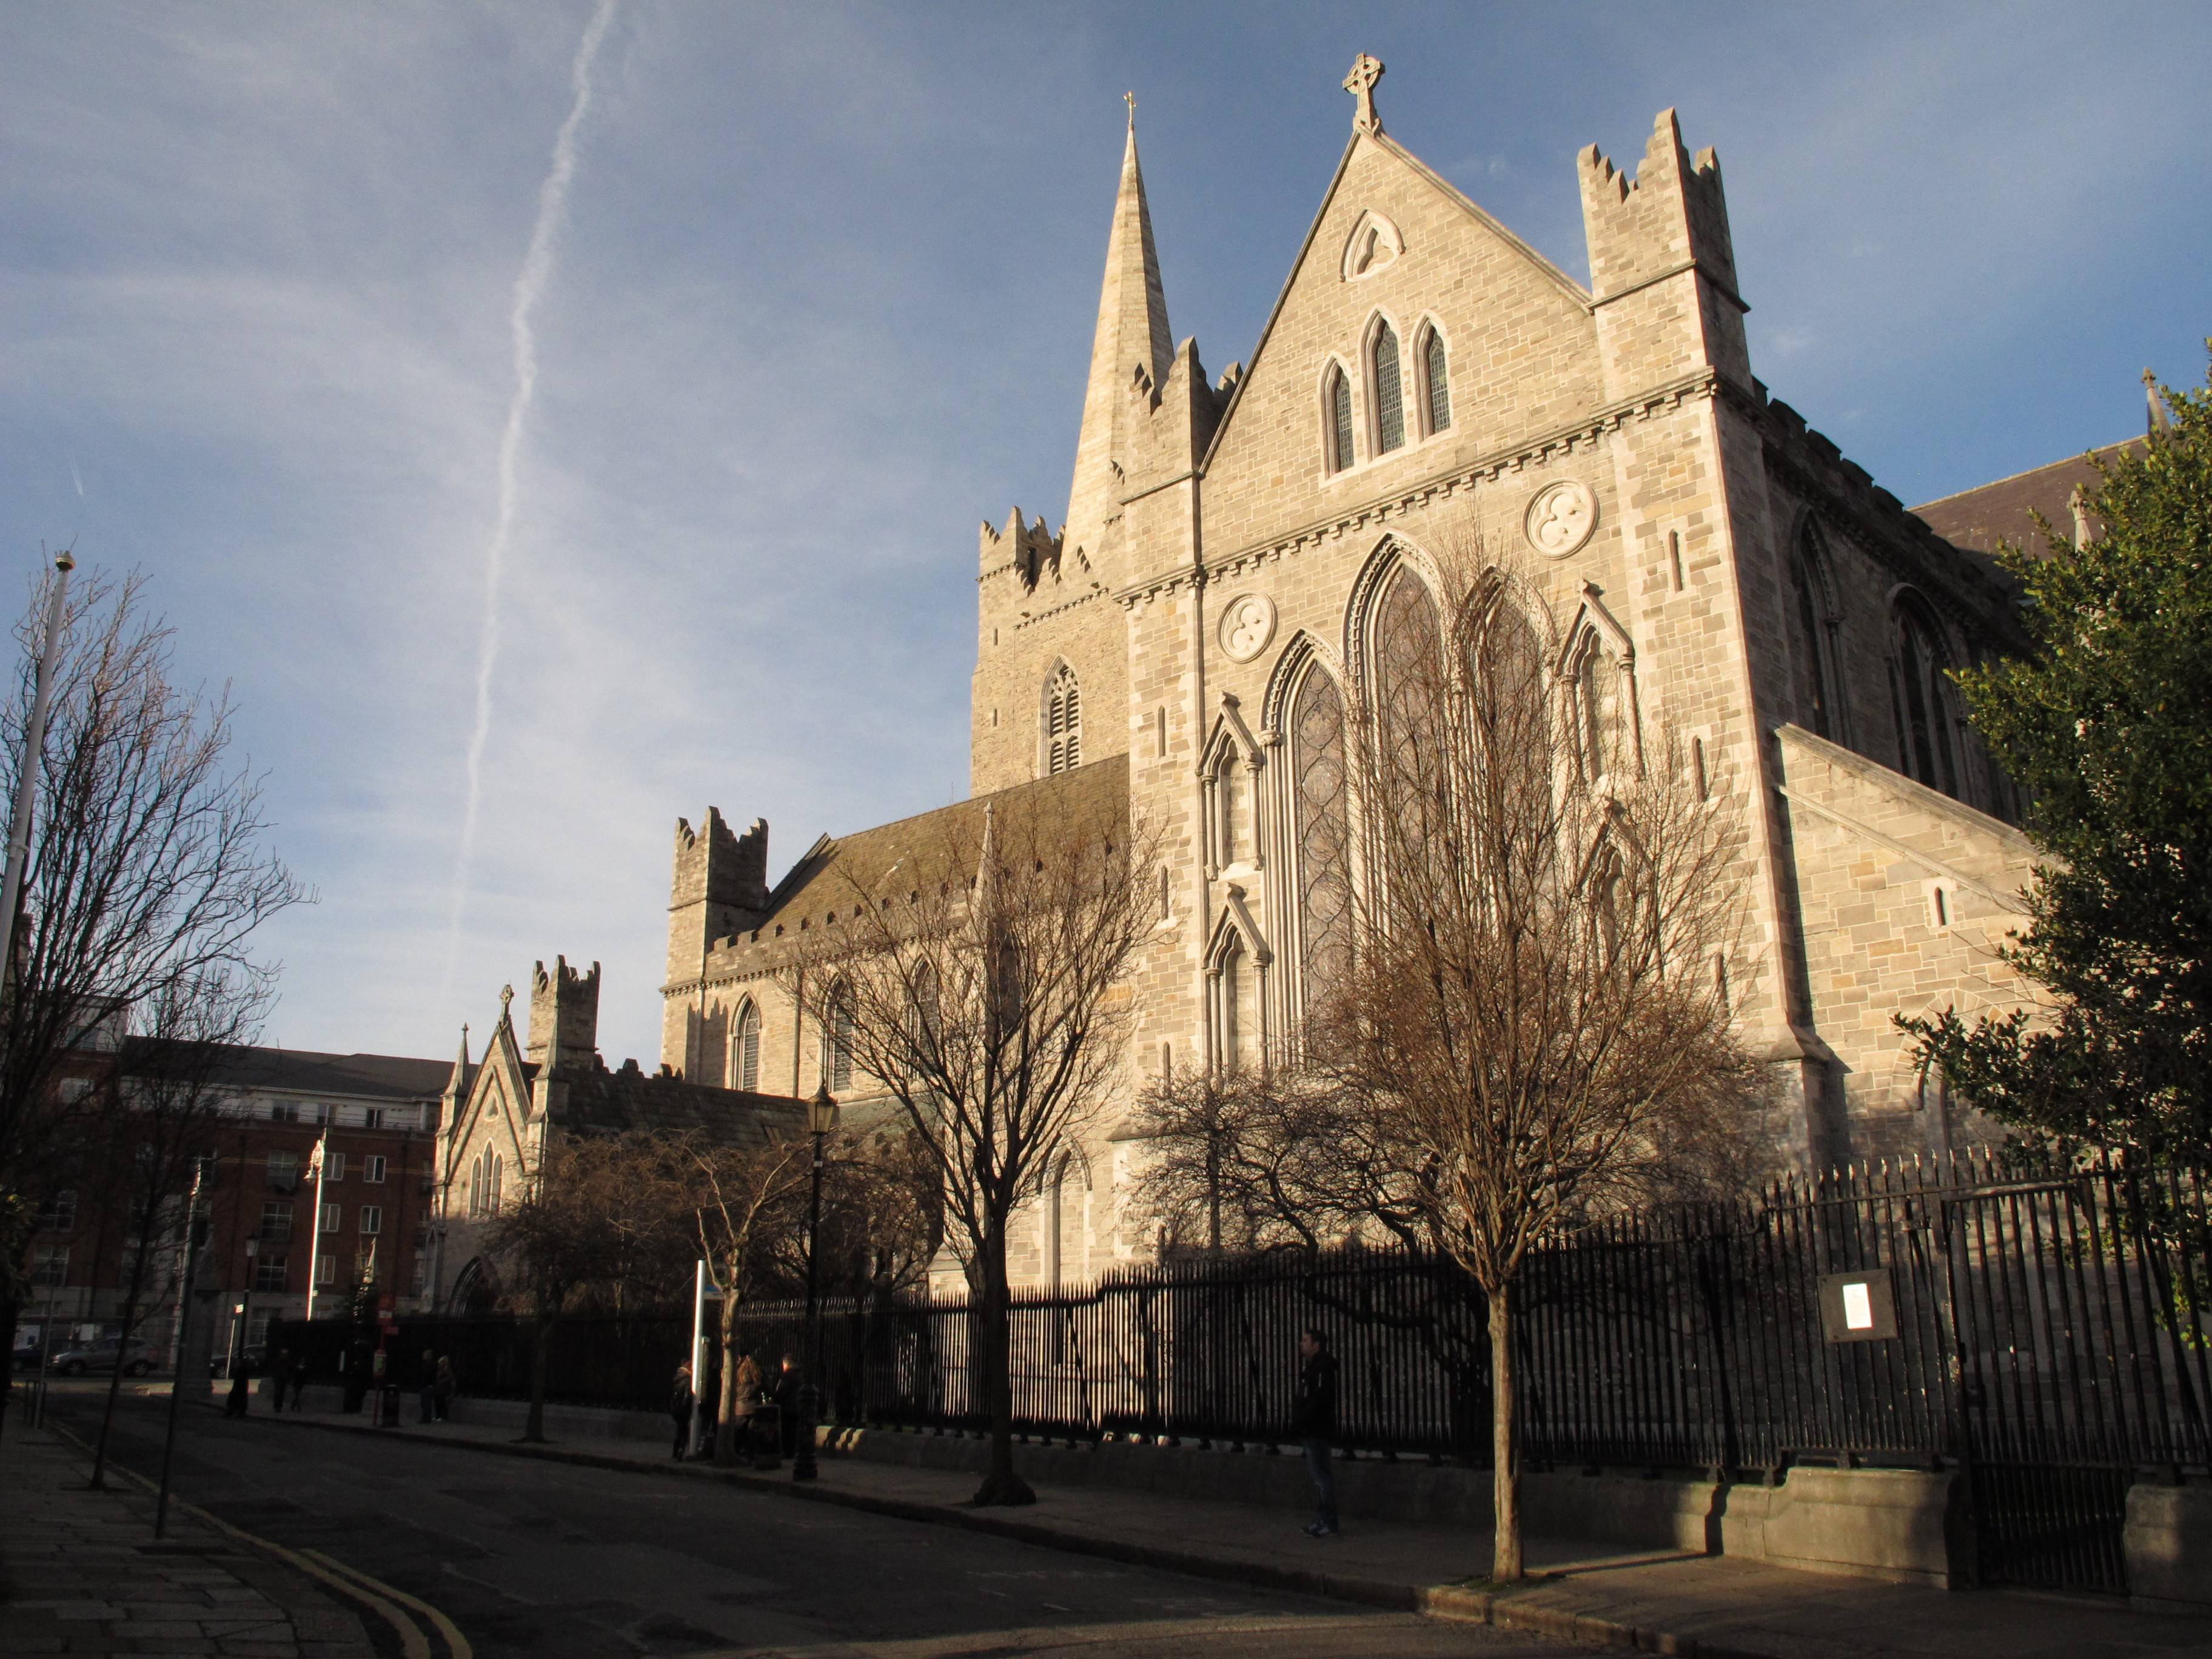 The grounds of St. Patrick's Cathedral in Dublin, built in 1220 in honor of Ireland's patron Saint, include an ancient well, where tradition says St. Patrick baptized converts on his visit to Dublin in the fifth century.